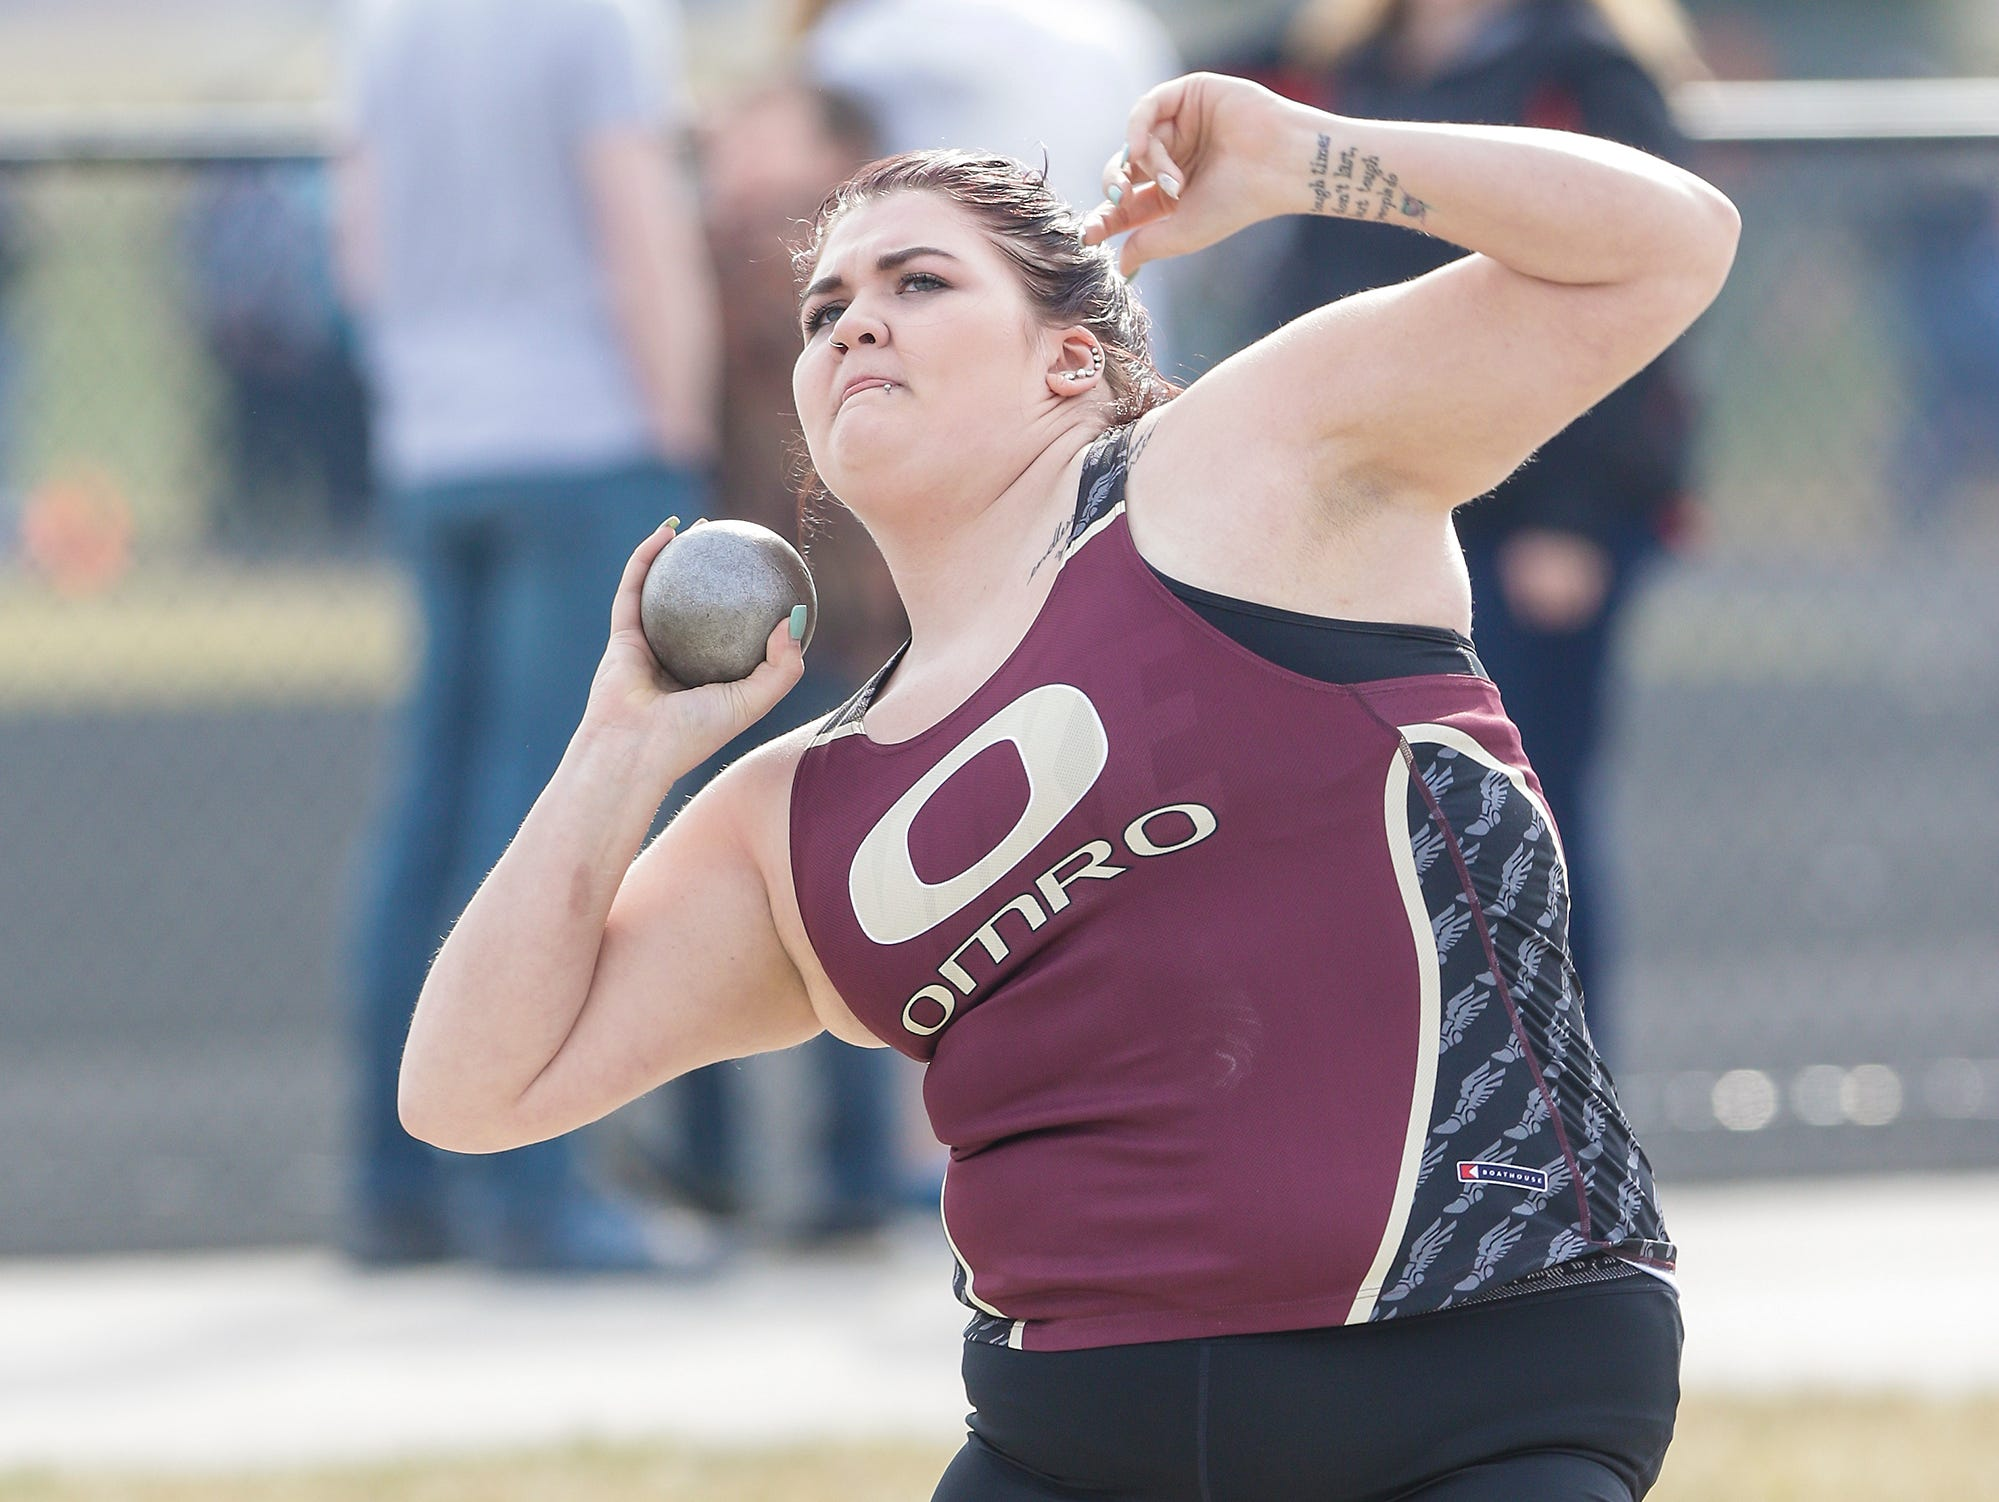 Omro High School's Ashly Carpenter takes part in the shot putt Tuesday, April 16, 2019 at North Fond du Lac High School in North Fond du Lac, Wis. Doug Raflik/USA TODAY NETWORK-Wisconsin